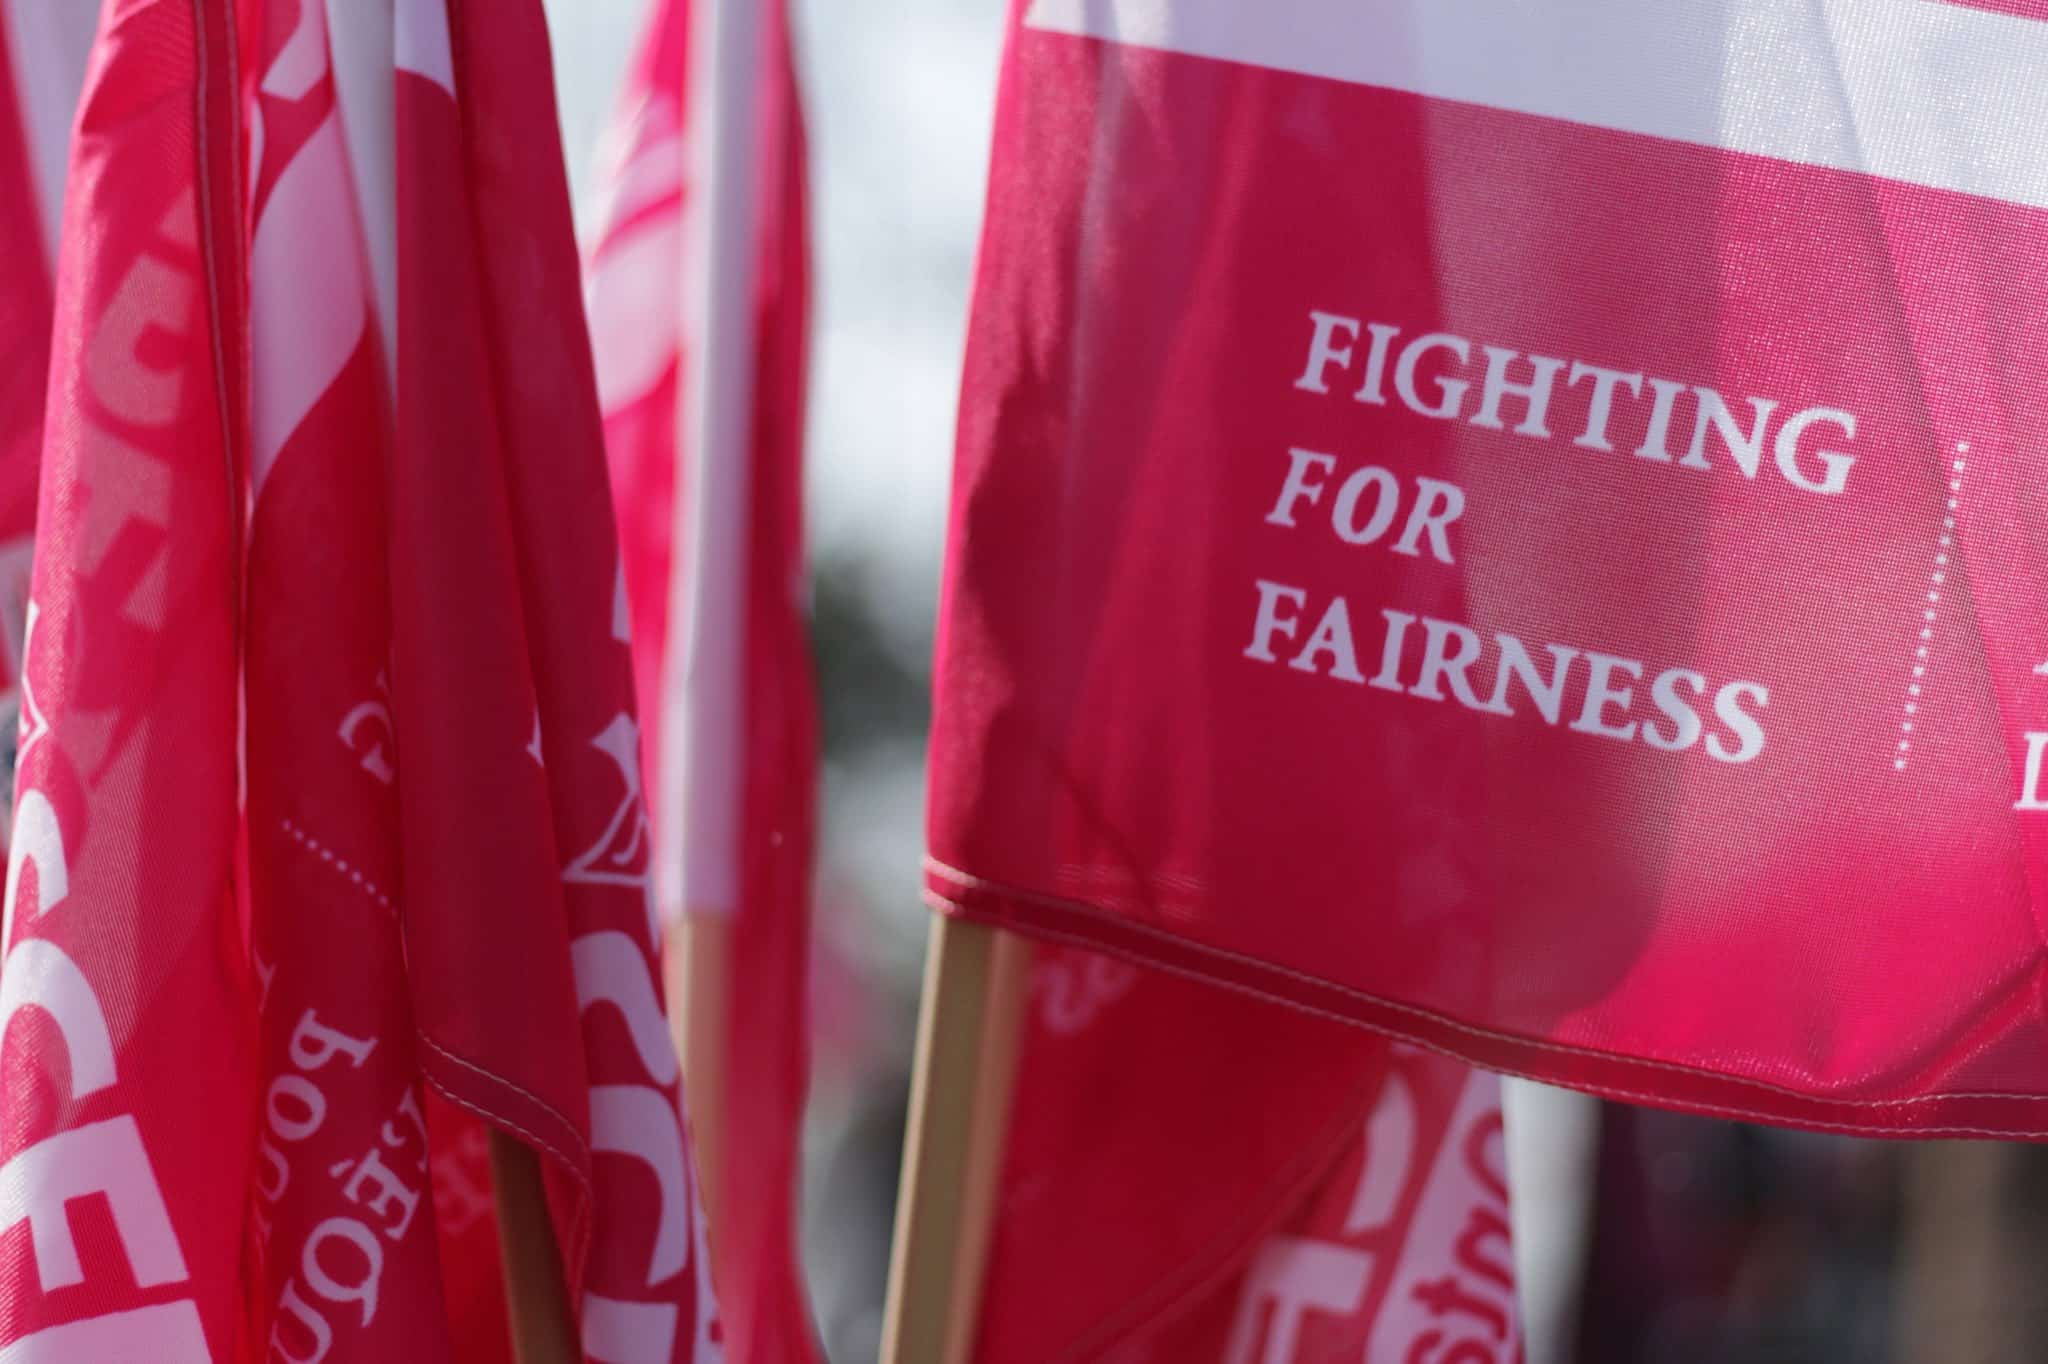 Workers' defence of pension rights at Carleton reaches Ontario Labour Relations Board